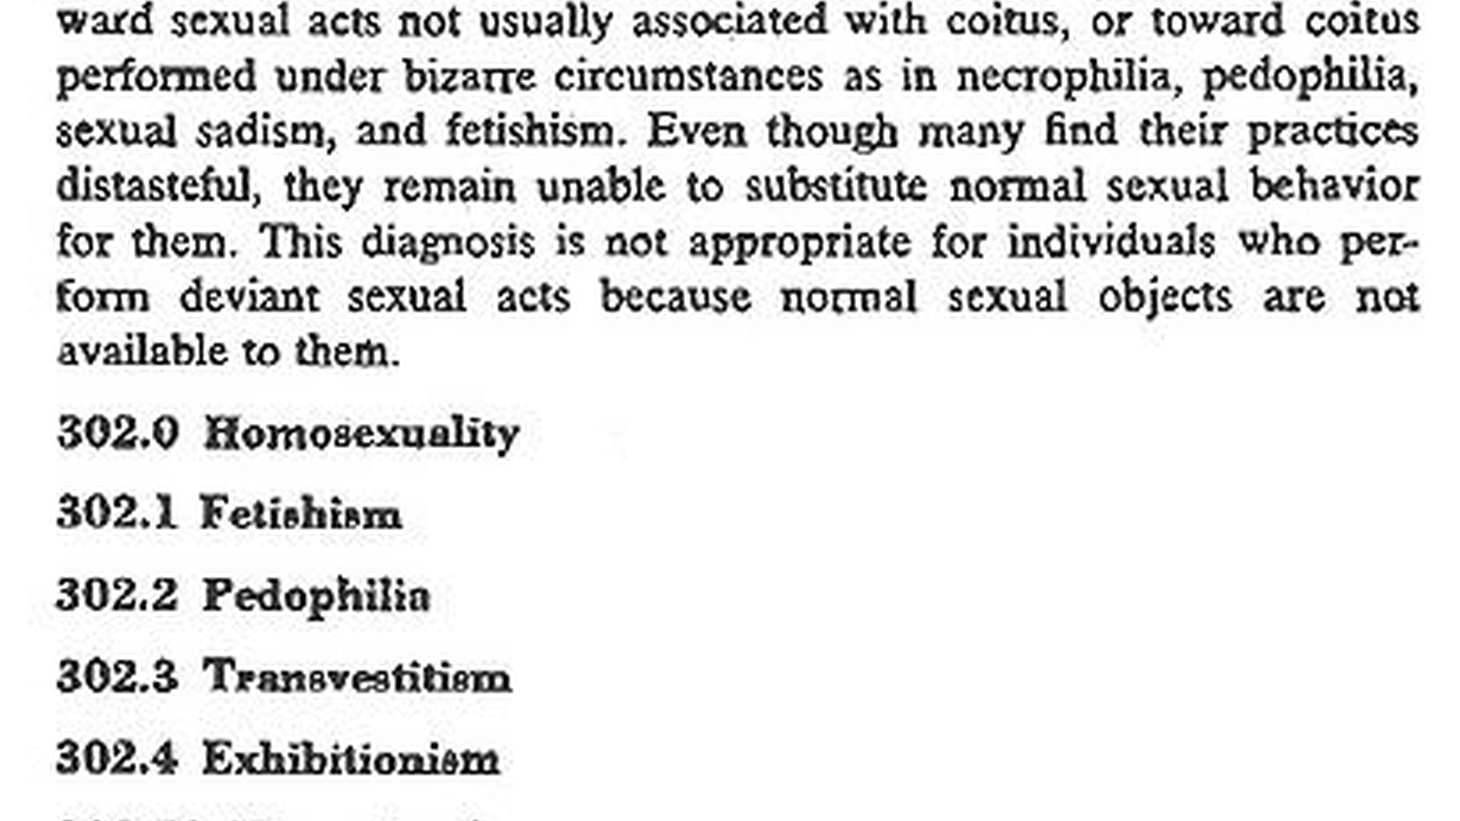 The story of how the American Psychiatric